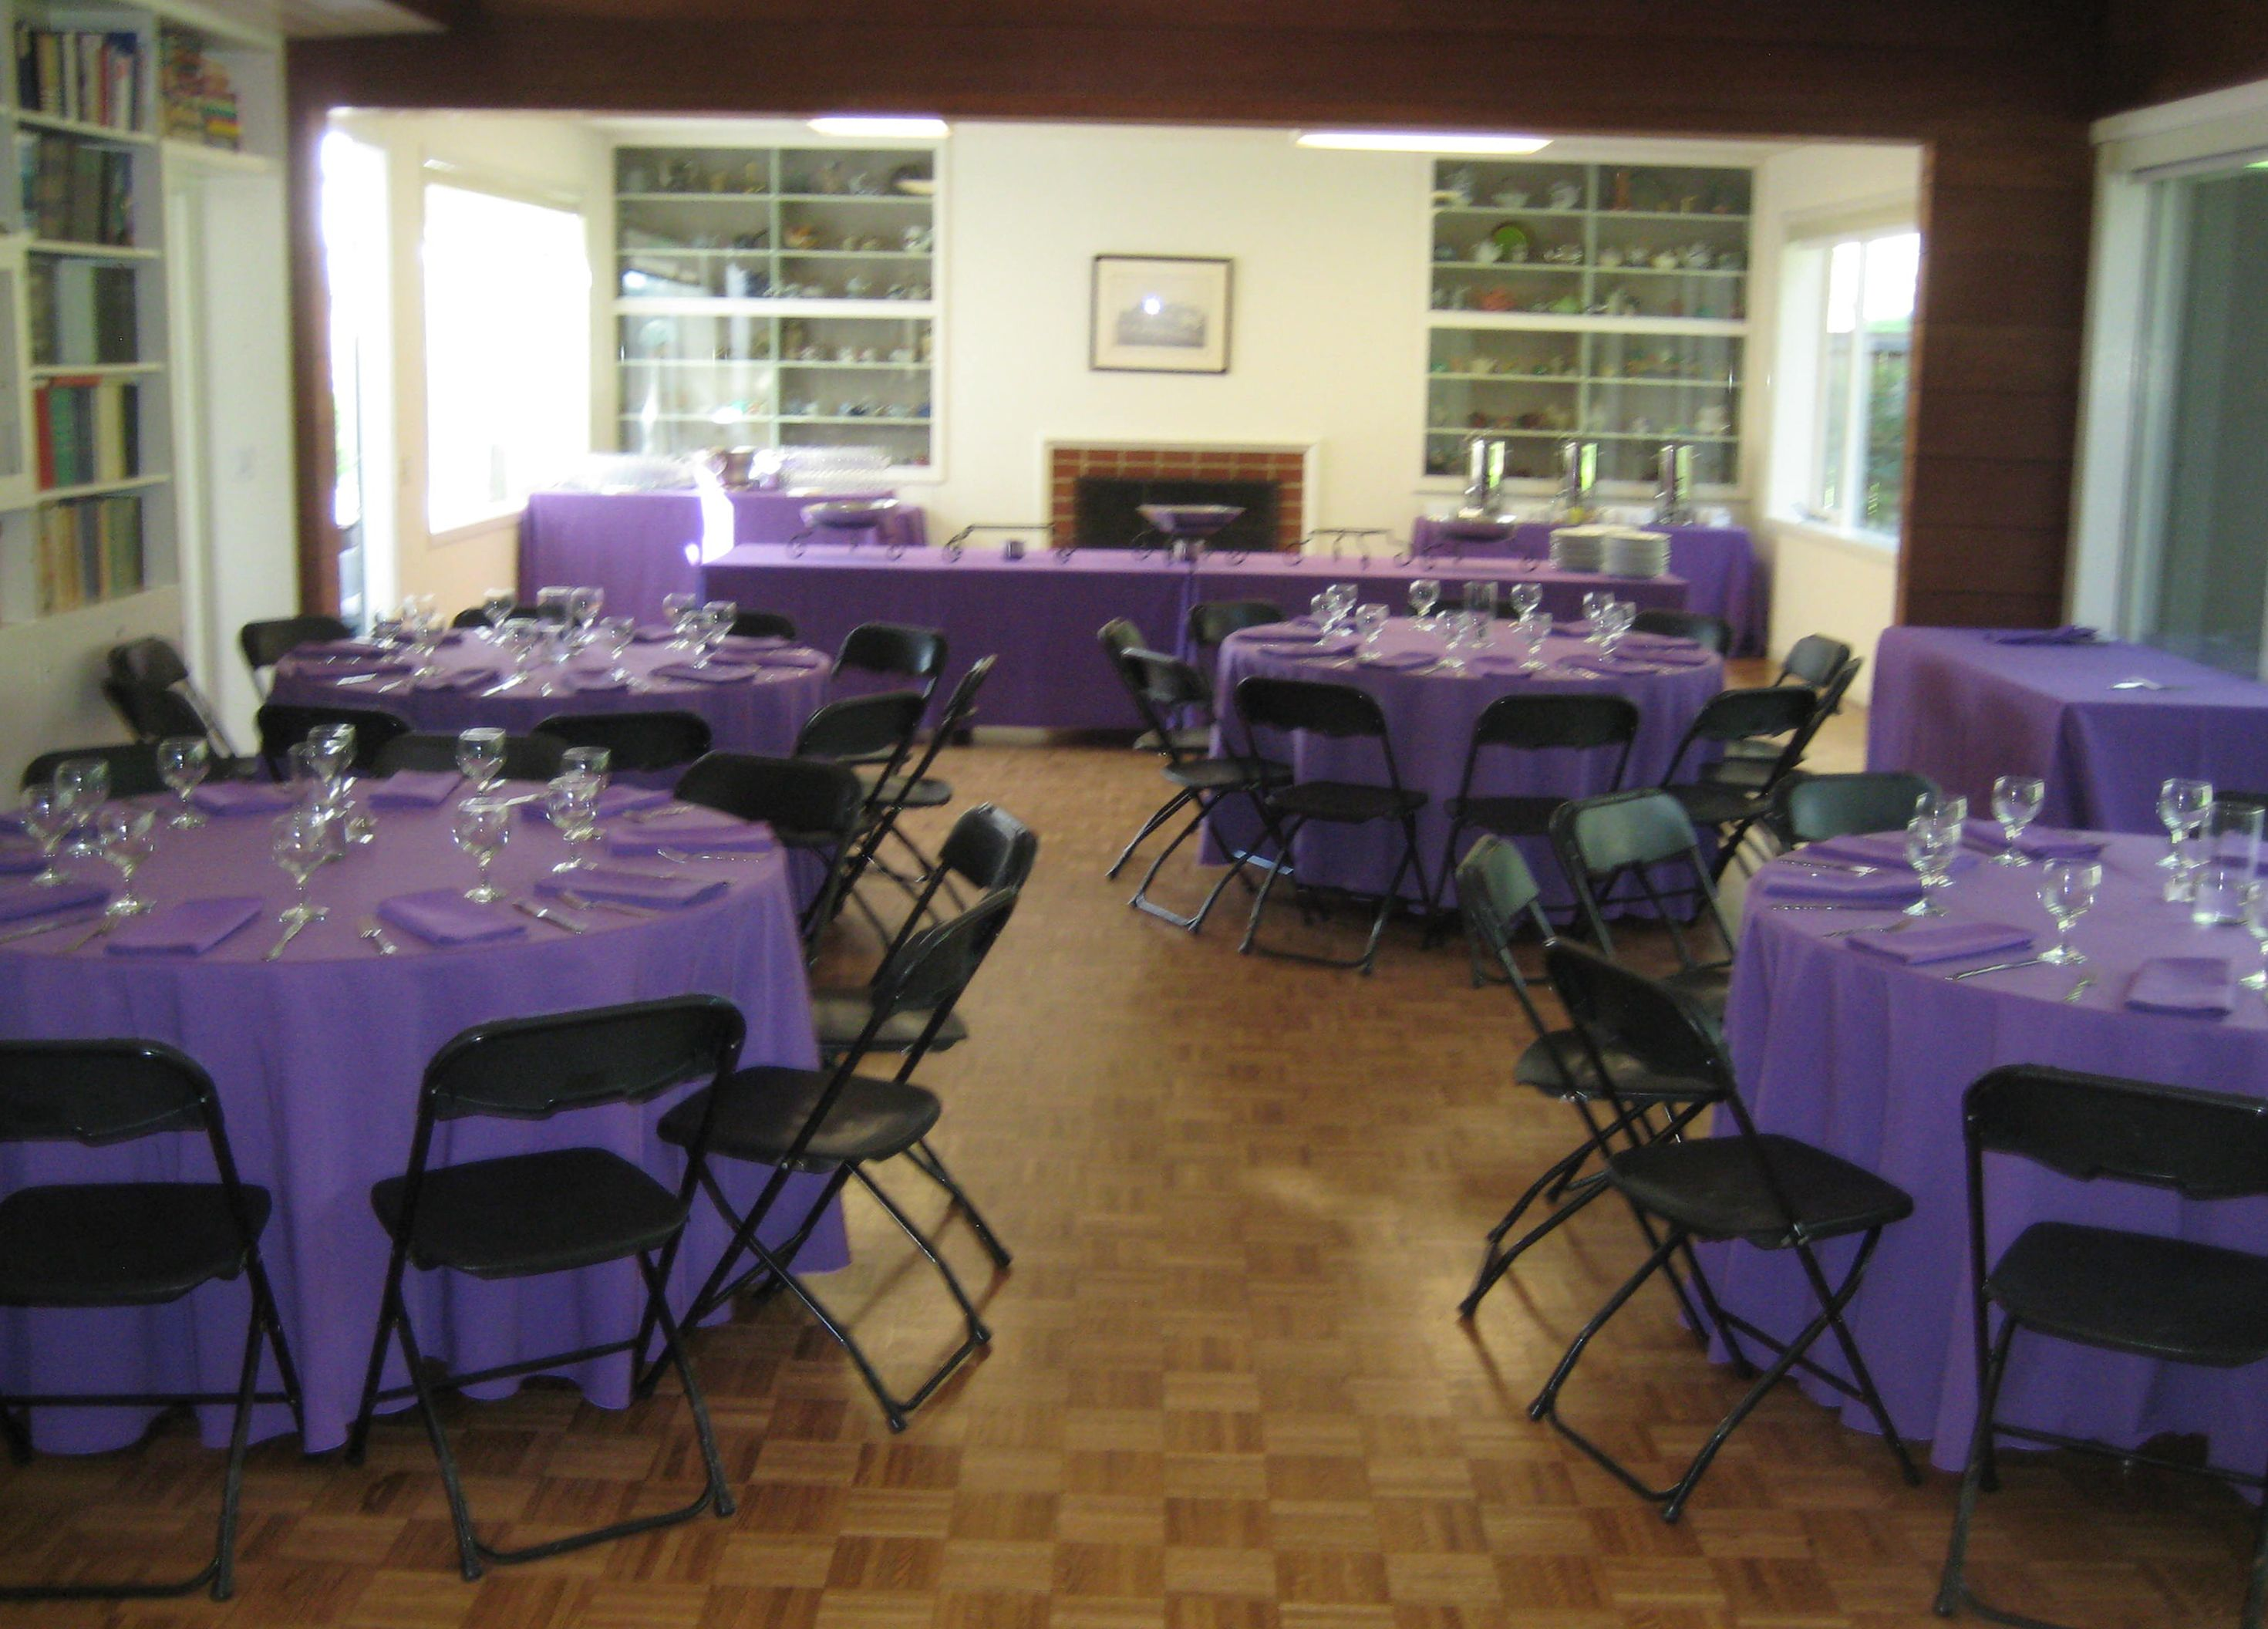 Black folding chairs wedding - Grape Linens Grape Napkins And Black Plastic Folding Chairs At The Reinhardt Alumnae House At